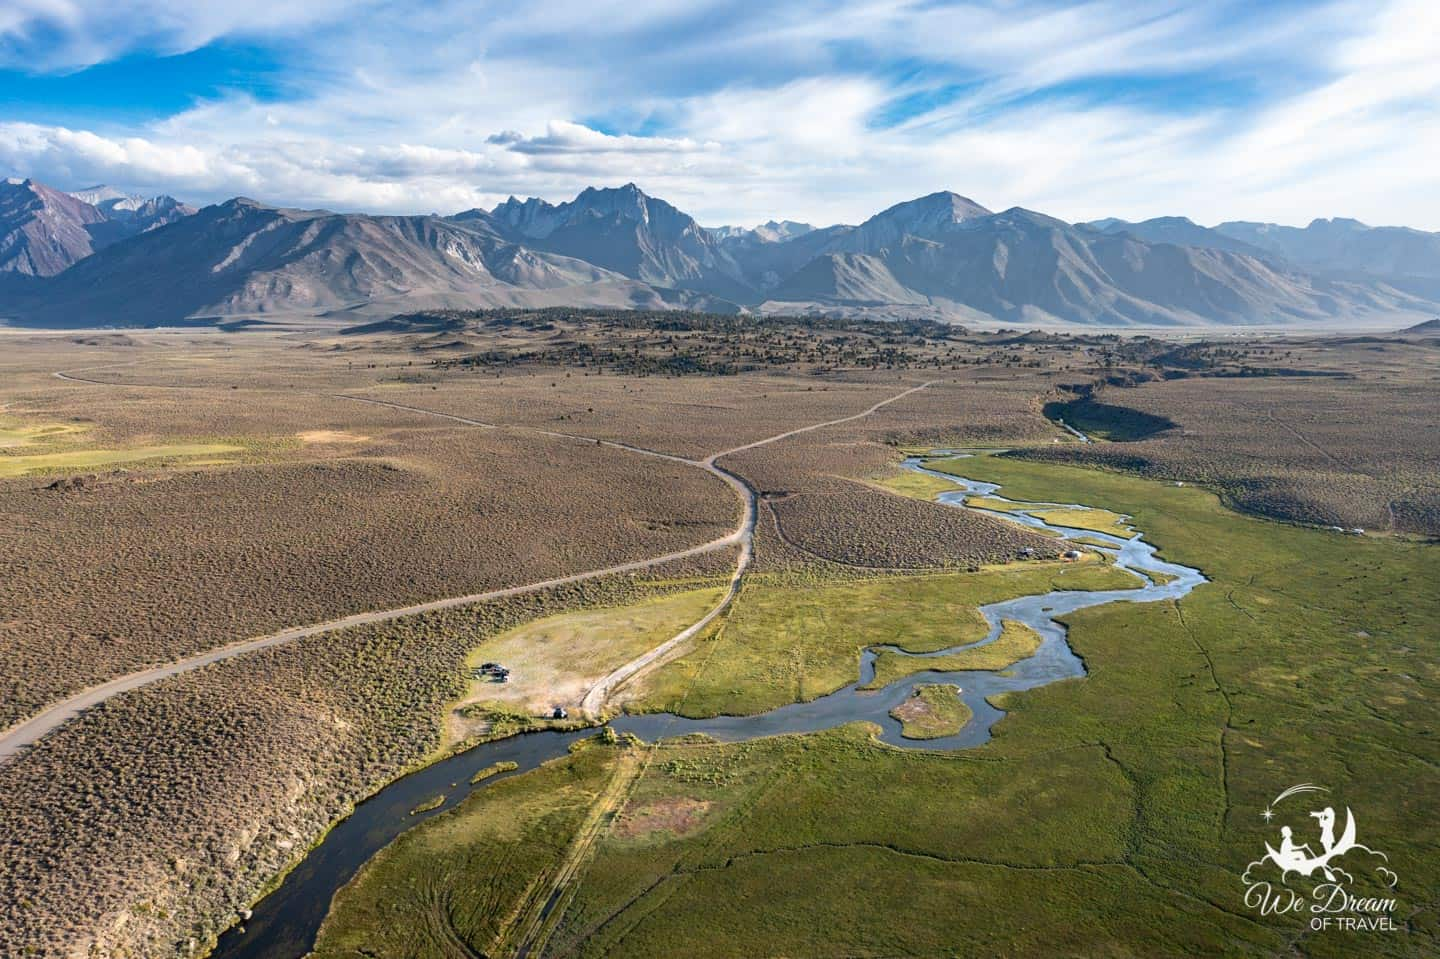 One of many snaking creeks in the Whitmore Hot Springs surrounded by the Eastern Sierra Nevada mountain range.